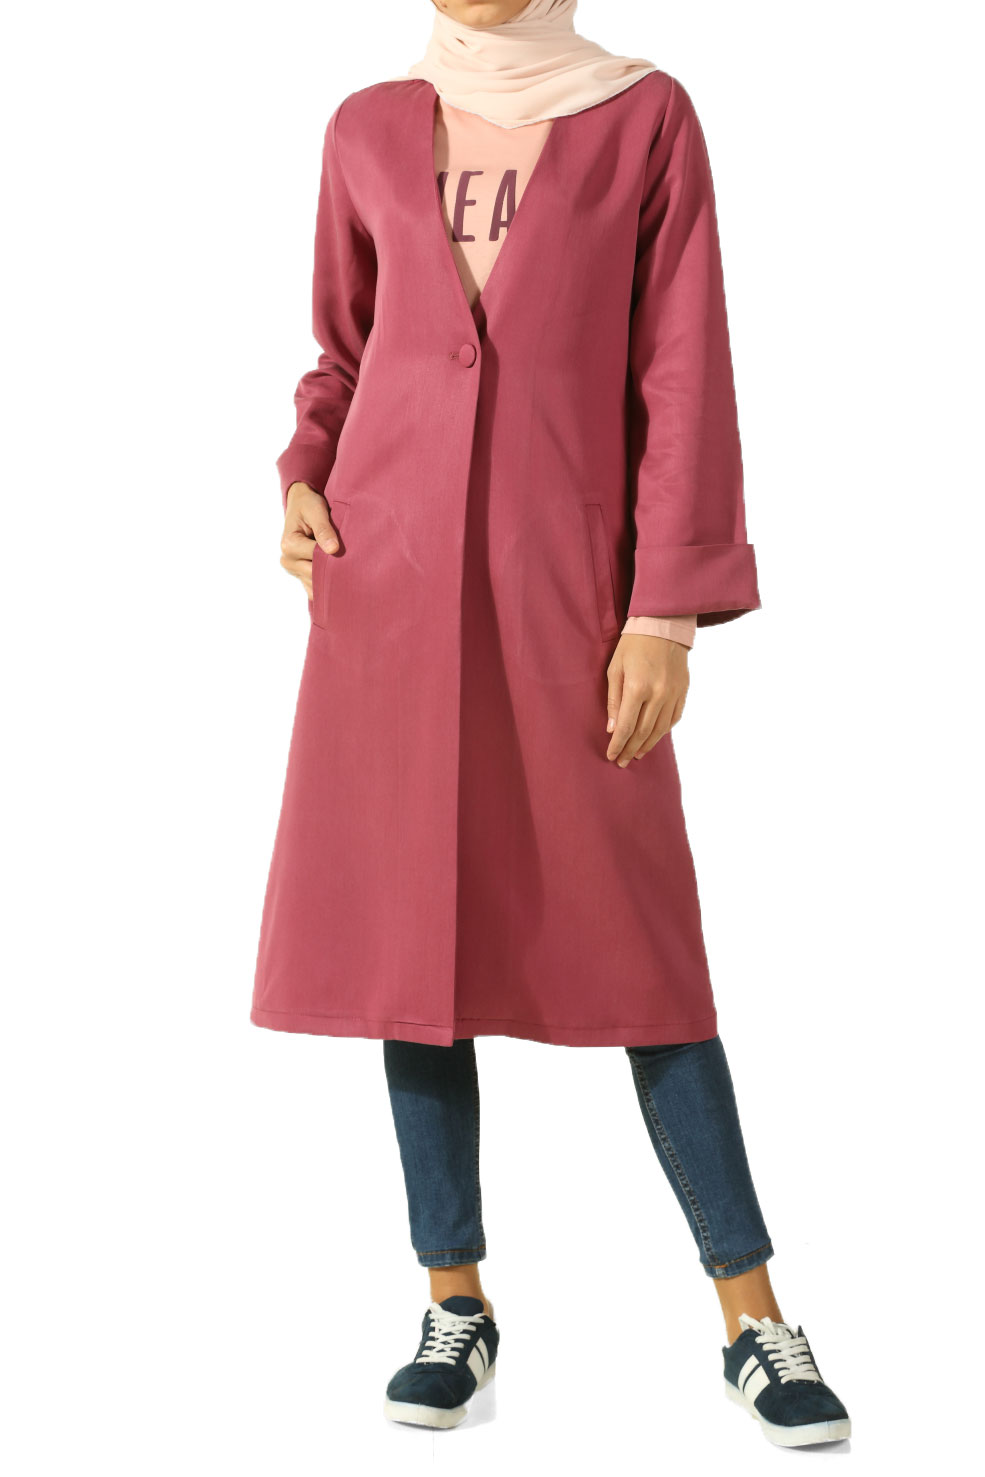 Light Rose DOUBLE SLEEVE JACKET WITH BUTTON - 4036STFN